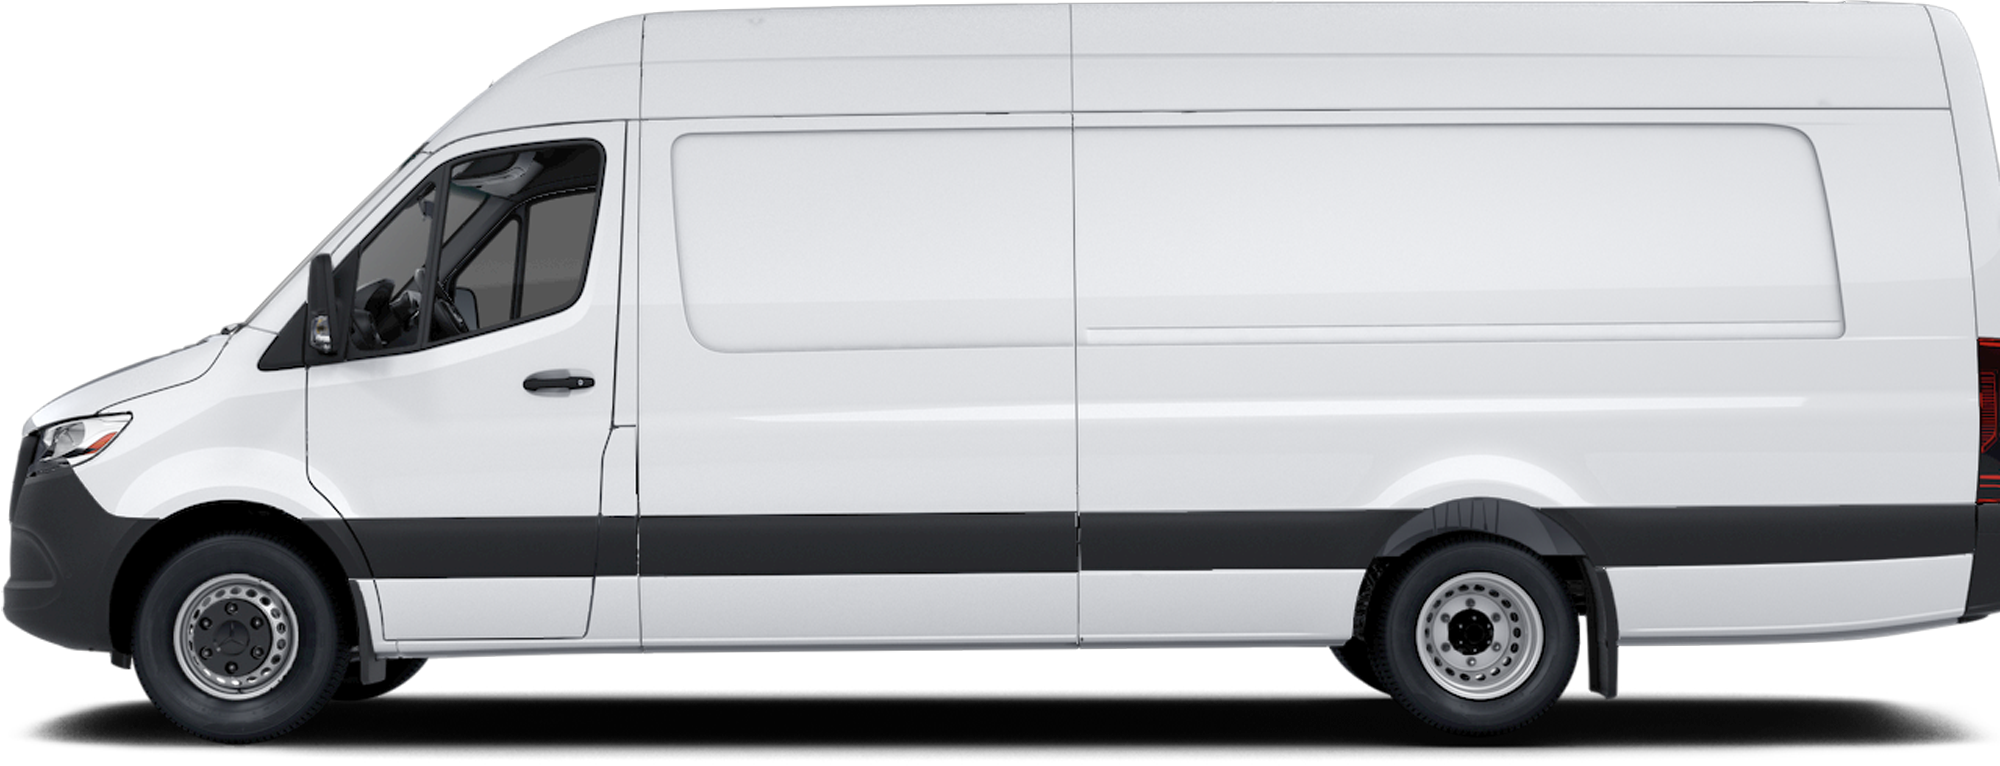 2020 Mercedes-Benz Sprinter 4500 Van High Roof V6